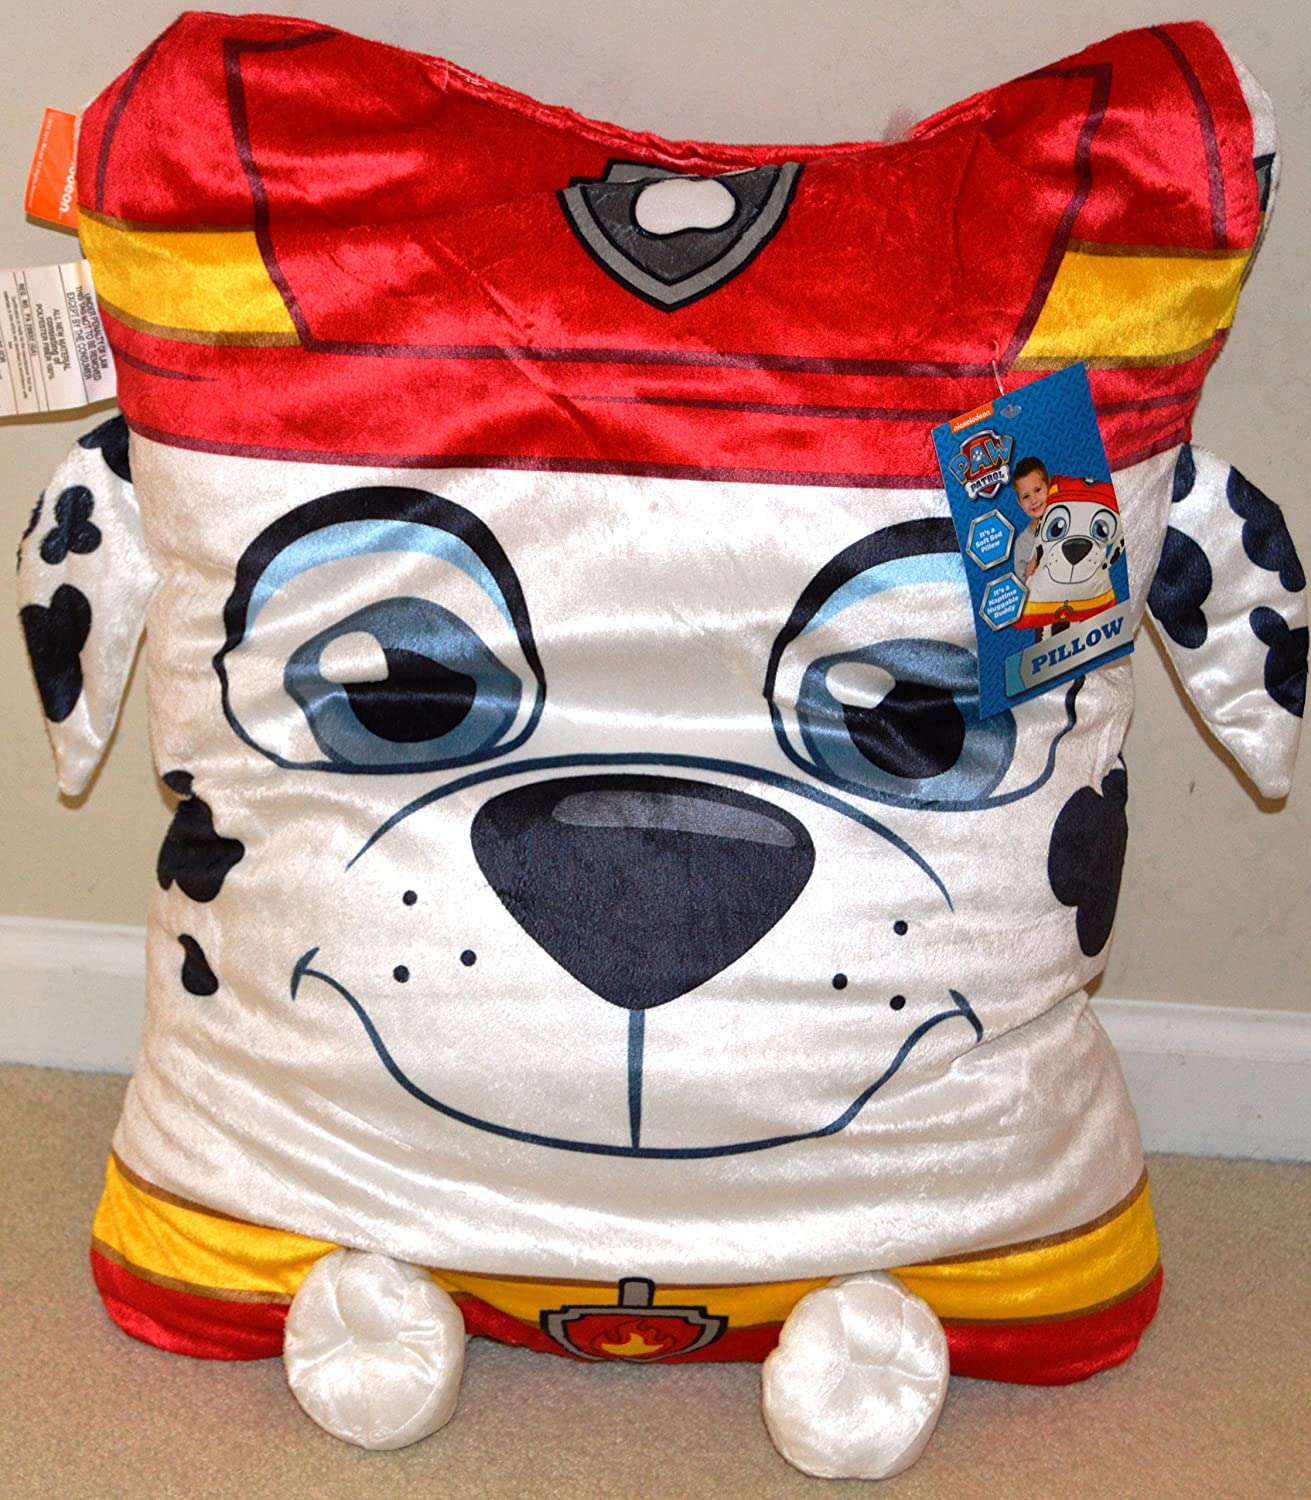 Nickelodeon's Paw Patrol Marshall 3D Pillow Buddy Franko